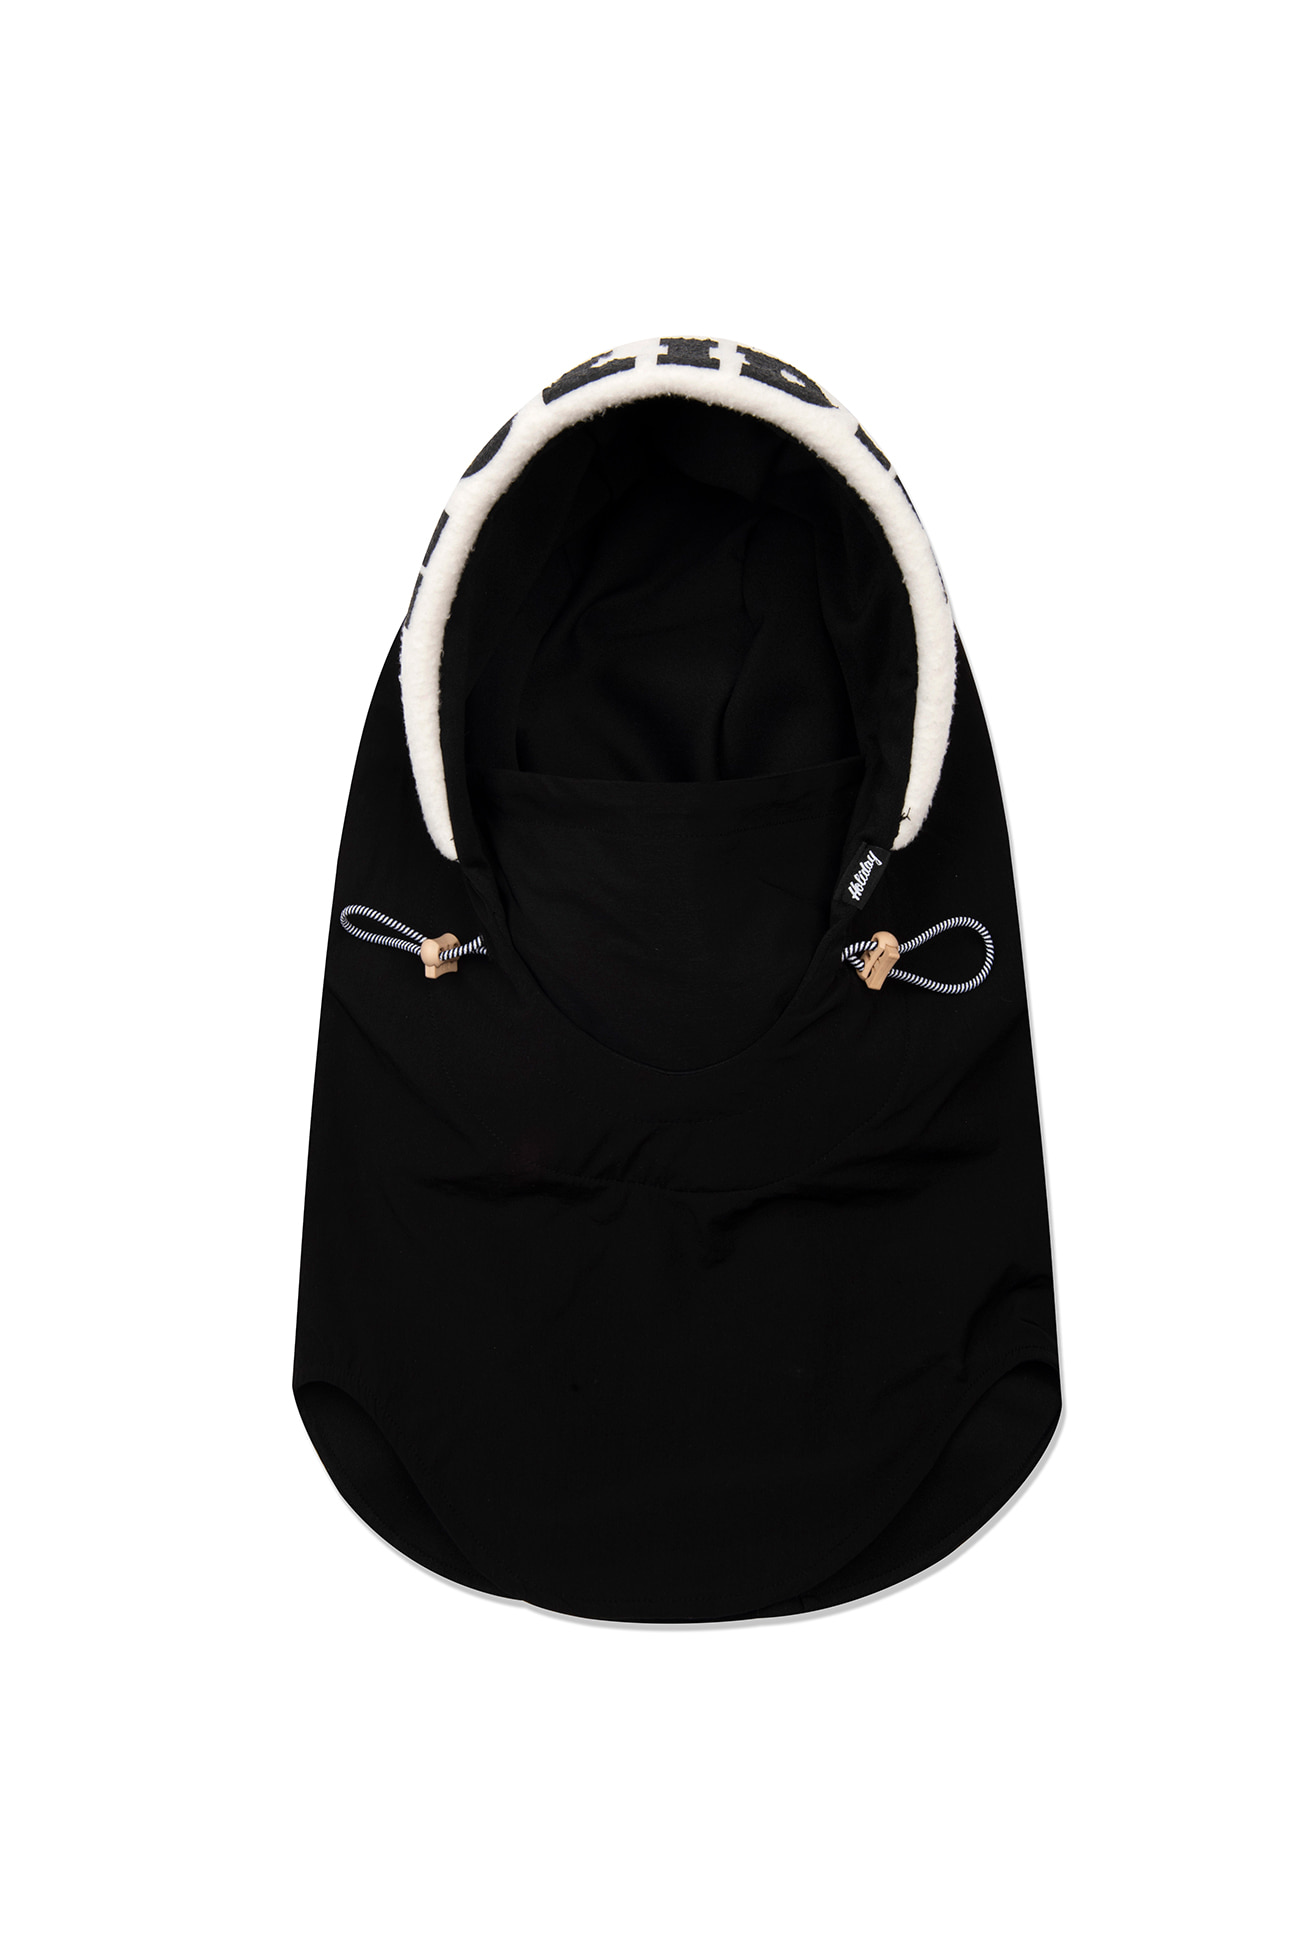 VISOR hood warmer - blackHOLIDAY OUTERWEAR